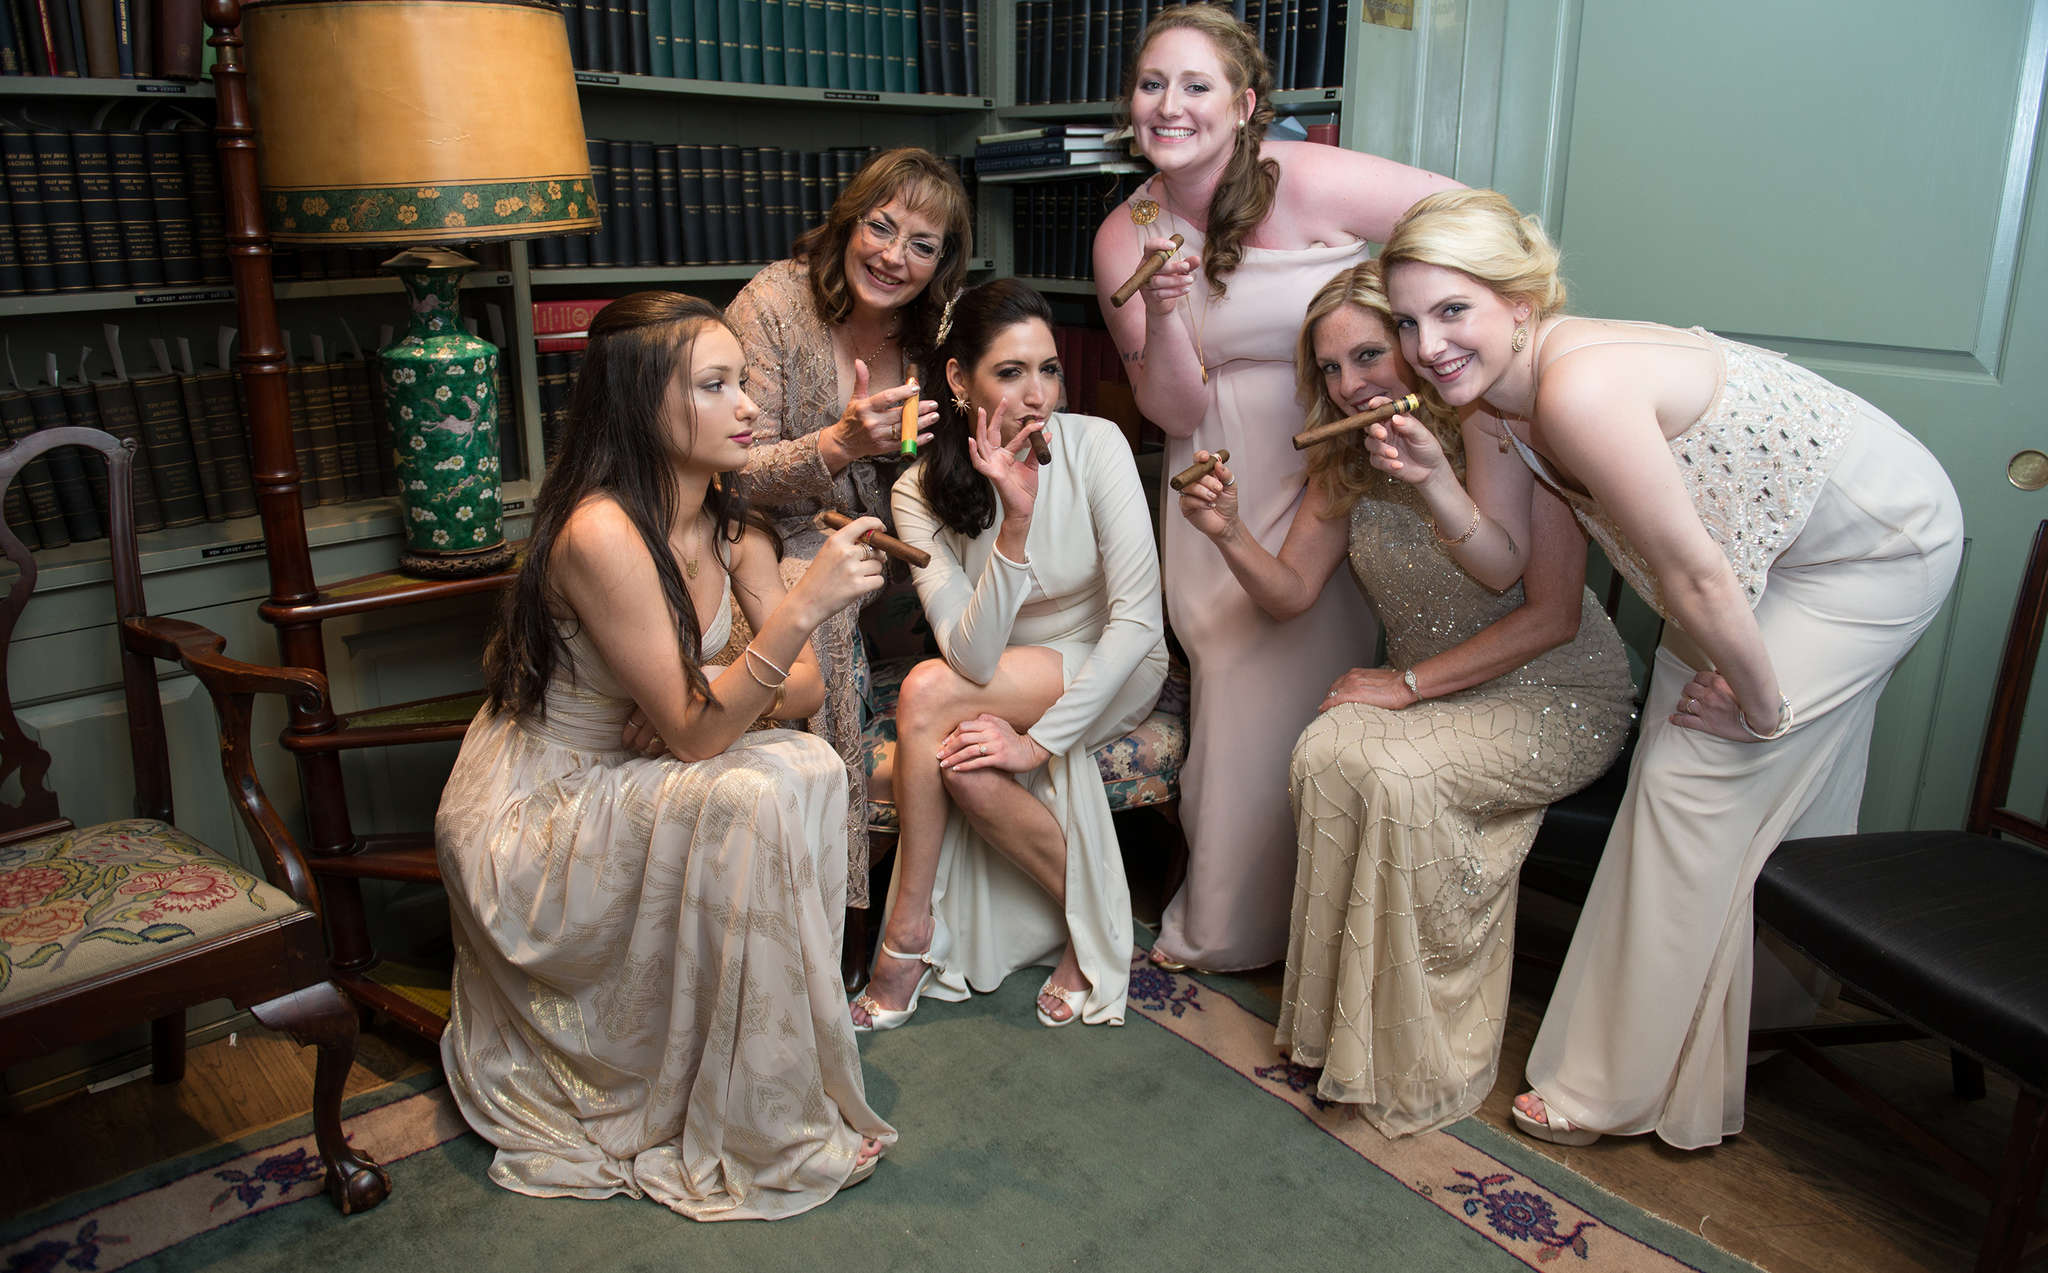 Bride Erin Oldfield (third from left), with Madison McGettigan, Joy Oldfield, Andrea Oldfield, Tina McGettigan, and Katelyn McGettigan.